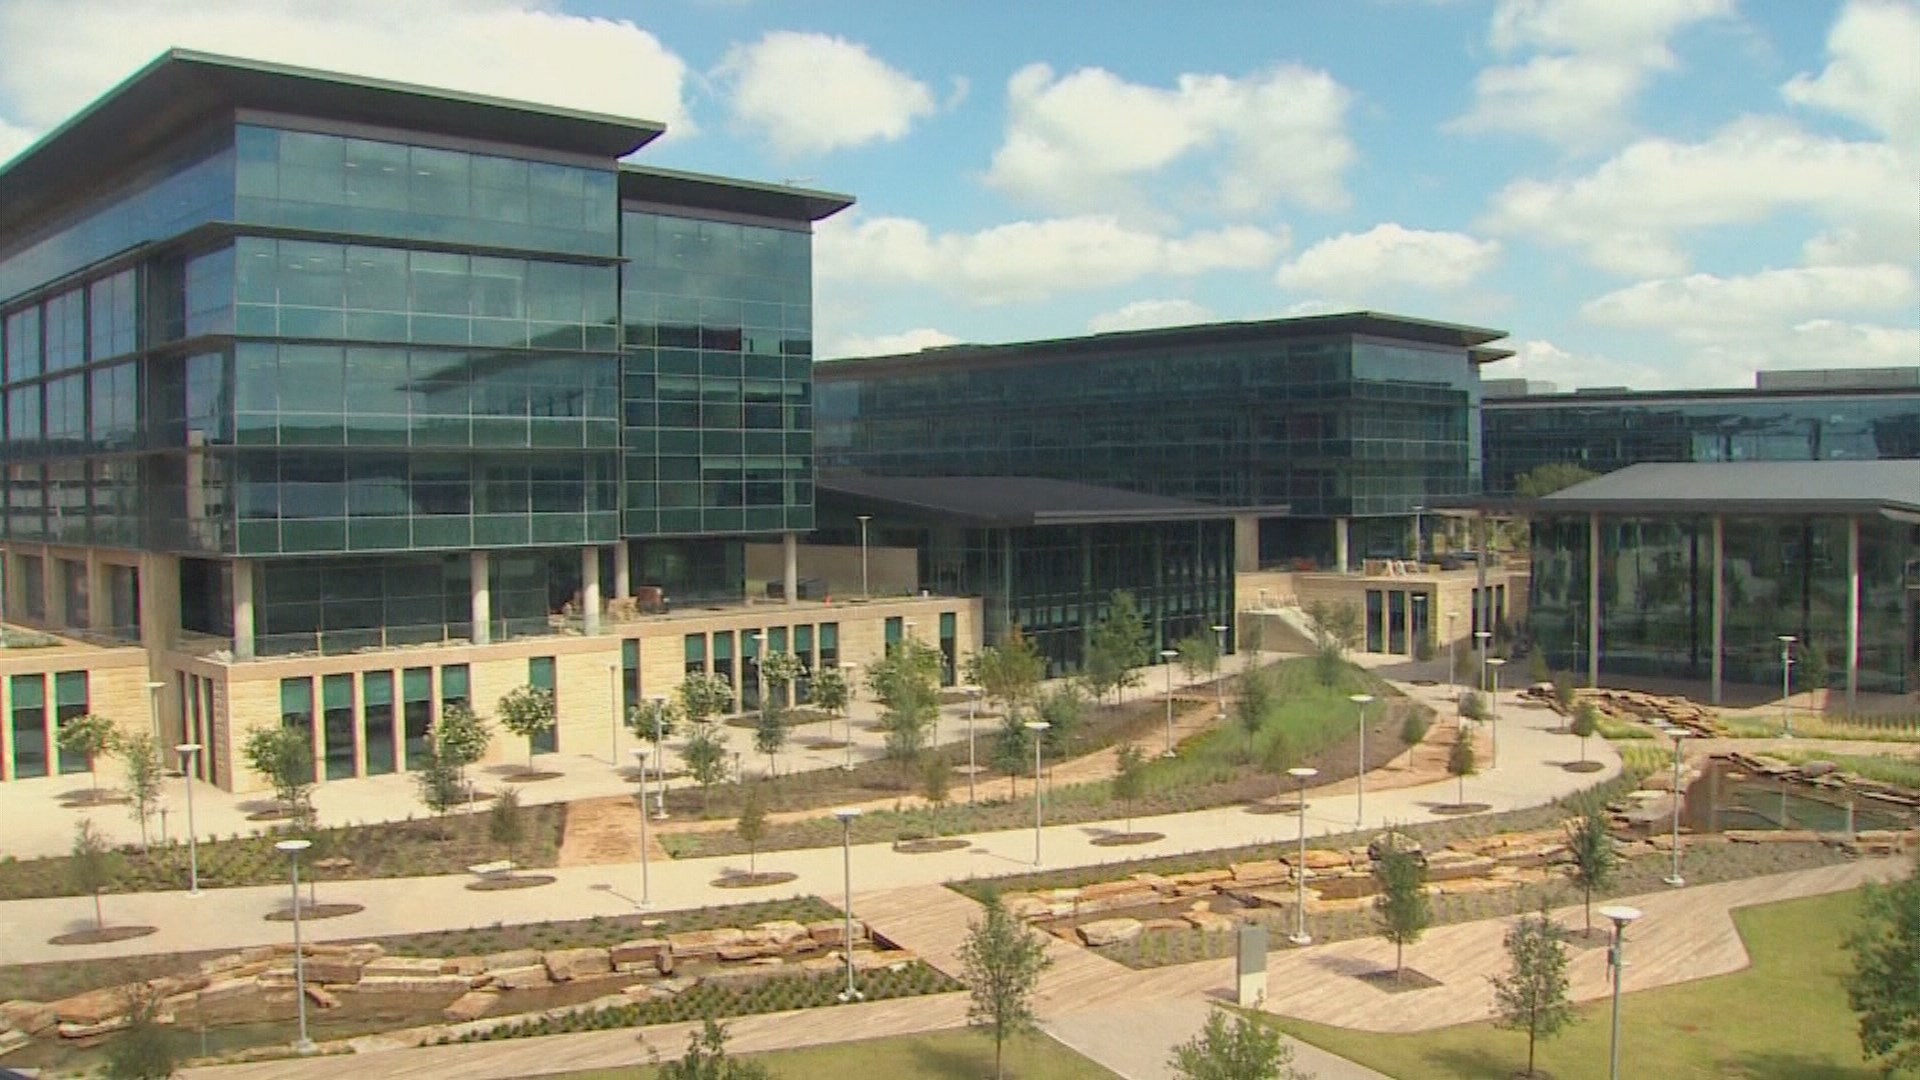 454827457 in addition Toyota Teases New Headquarters In Video also Toyota North America Office Photos IMG394898 as well Hunters Glen Crossing as well Map Columbus State. on toyota headquarters location plano